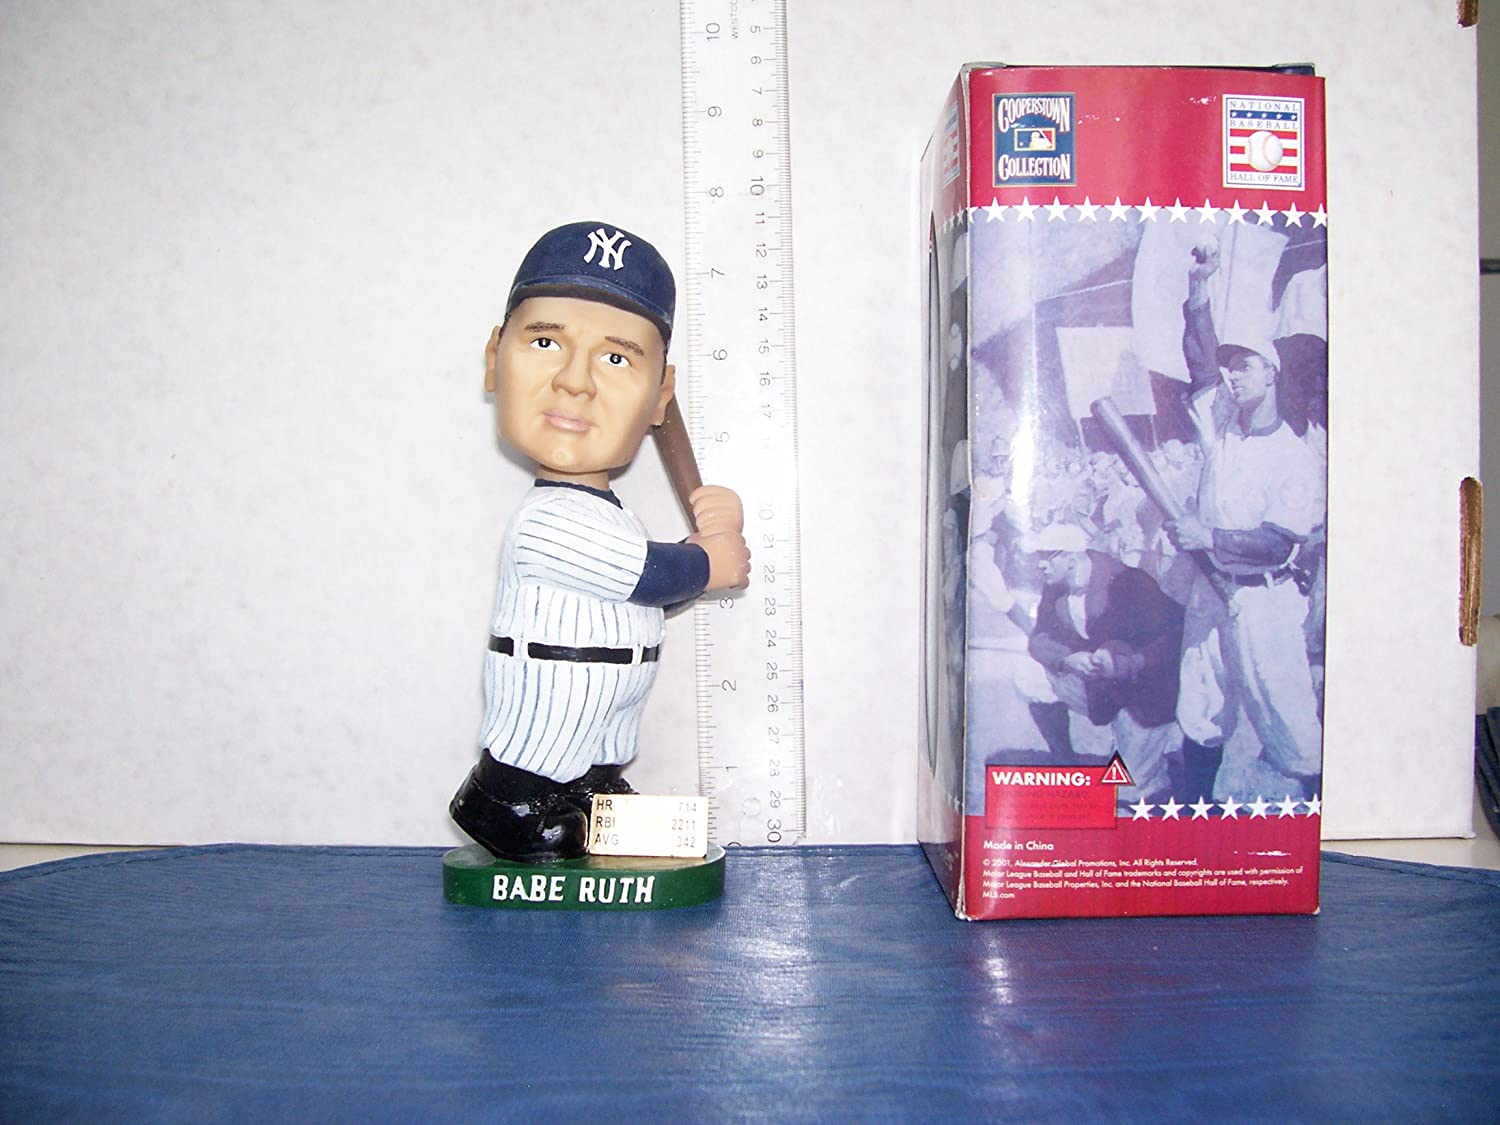 2001 AGP COOPERSTOWN COLLECTION BABE RUTH BOBBLEHEAD NEW YORK YANKEES MINT RARE!